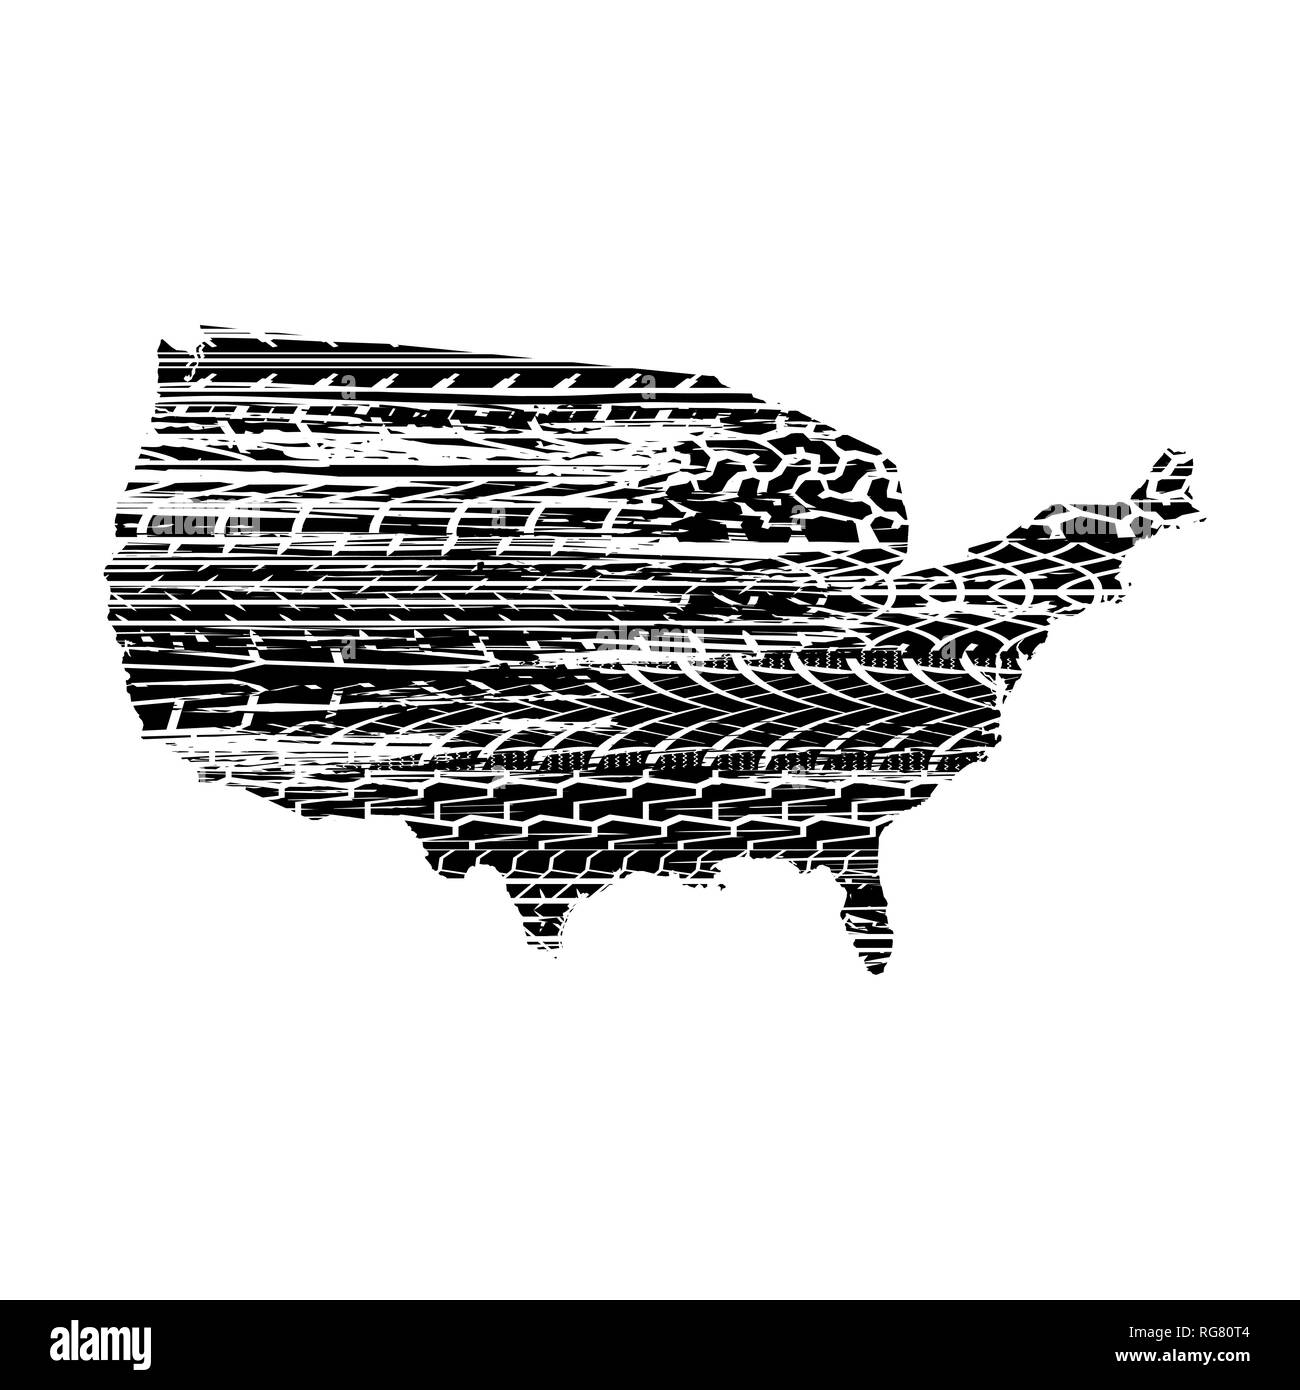 United States of America map silhouette with black tire track silhouettes Stock Vector